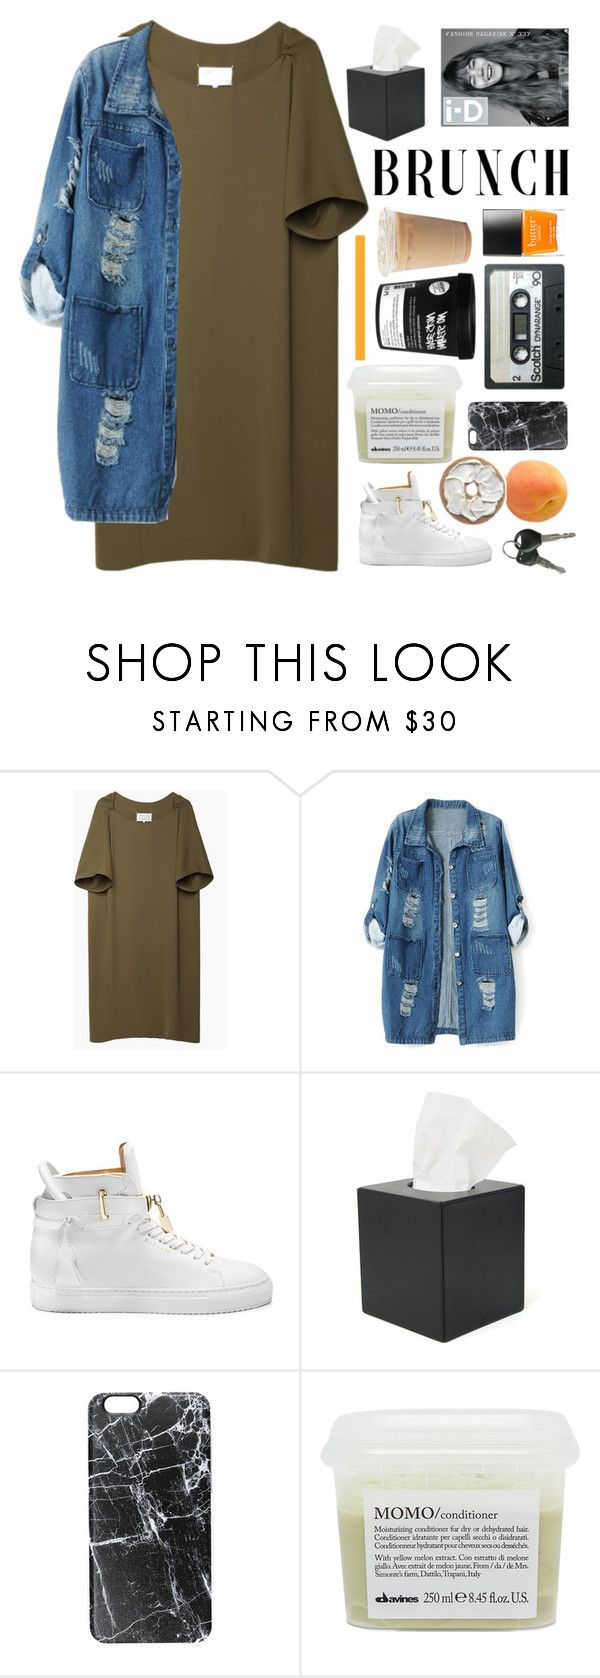 """Broken hearts rain on our angelic flies"" by lolalevjesrcna ❤ liked on Polyvore featuring Maison Margiela, Chicnova Fashion, BUSCEMI, Royce Leather, Casetify, Butter London, Davines, philosoqhytags, nicolewantstoseethis and life"